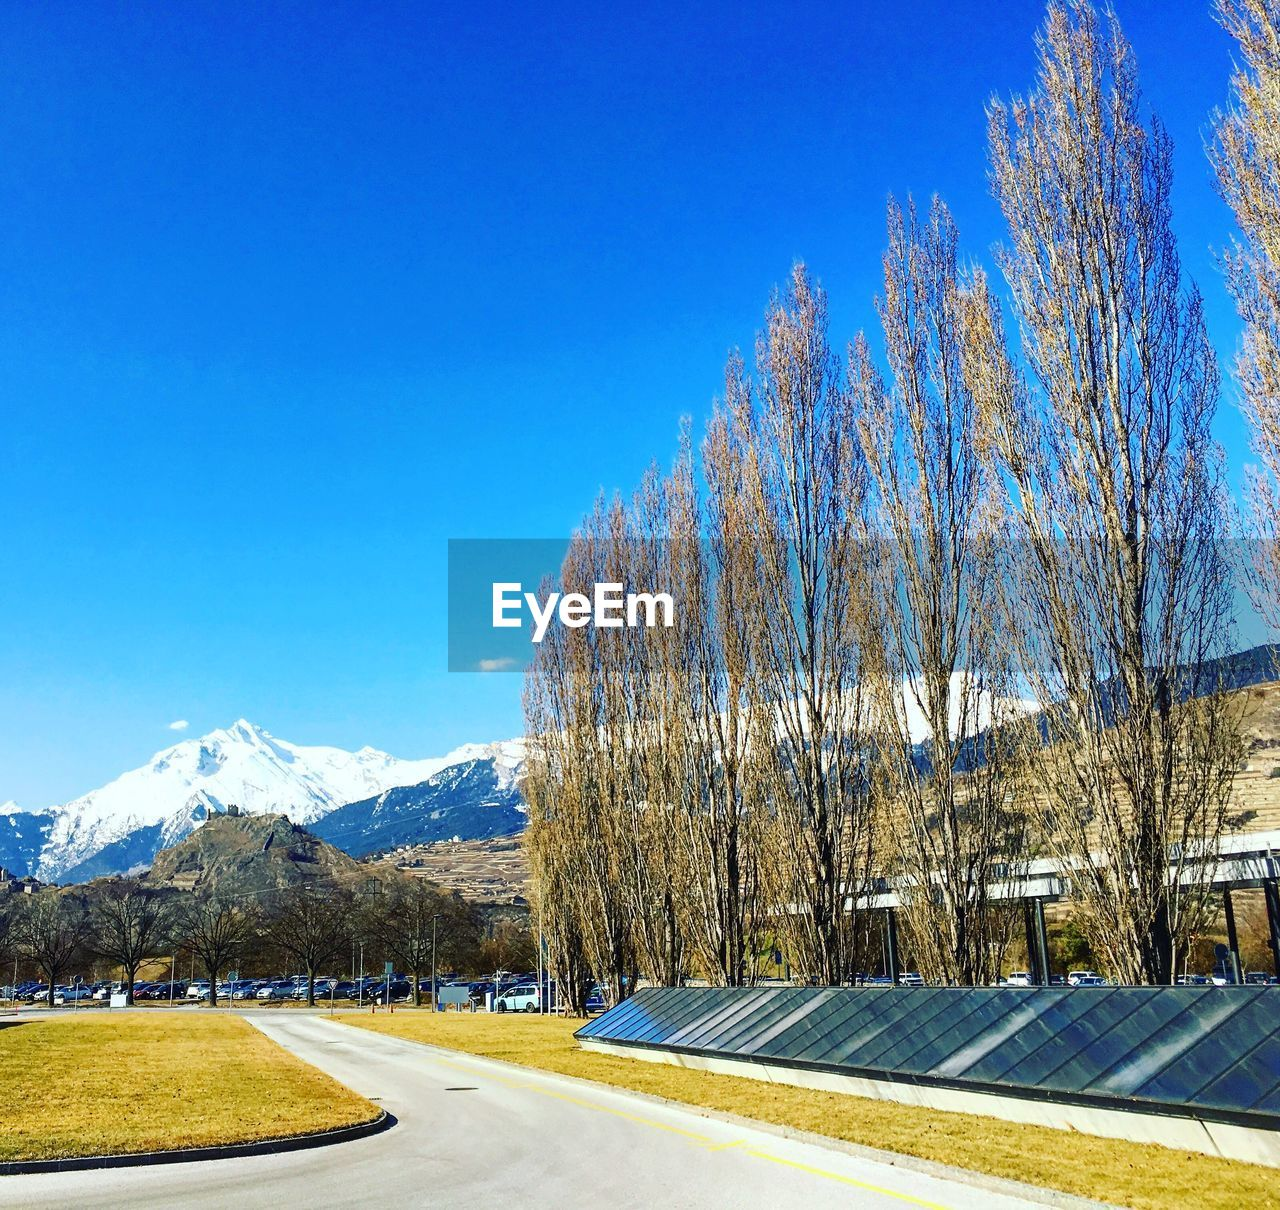 blue, snow, clear sky, mountain, nature, tree, beauty in nature, day, tranquility, outdoors, no people, winter, cold temperature, tranquil scene, scenics, sky, landscape, bare tree, road